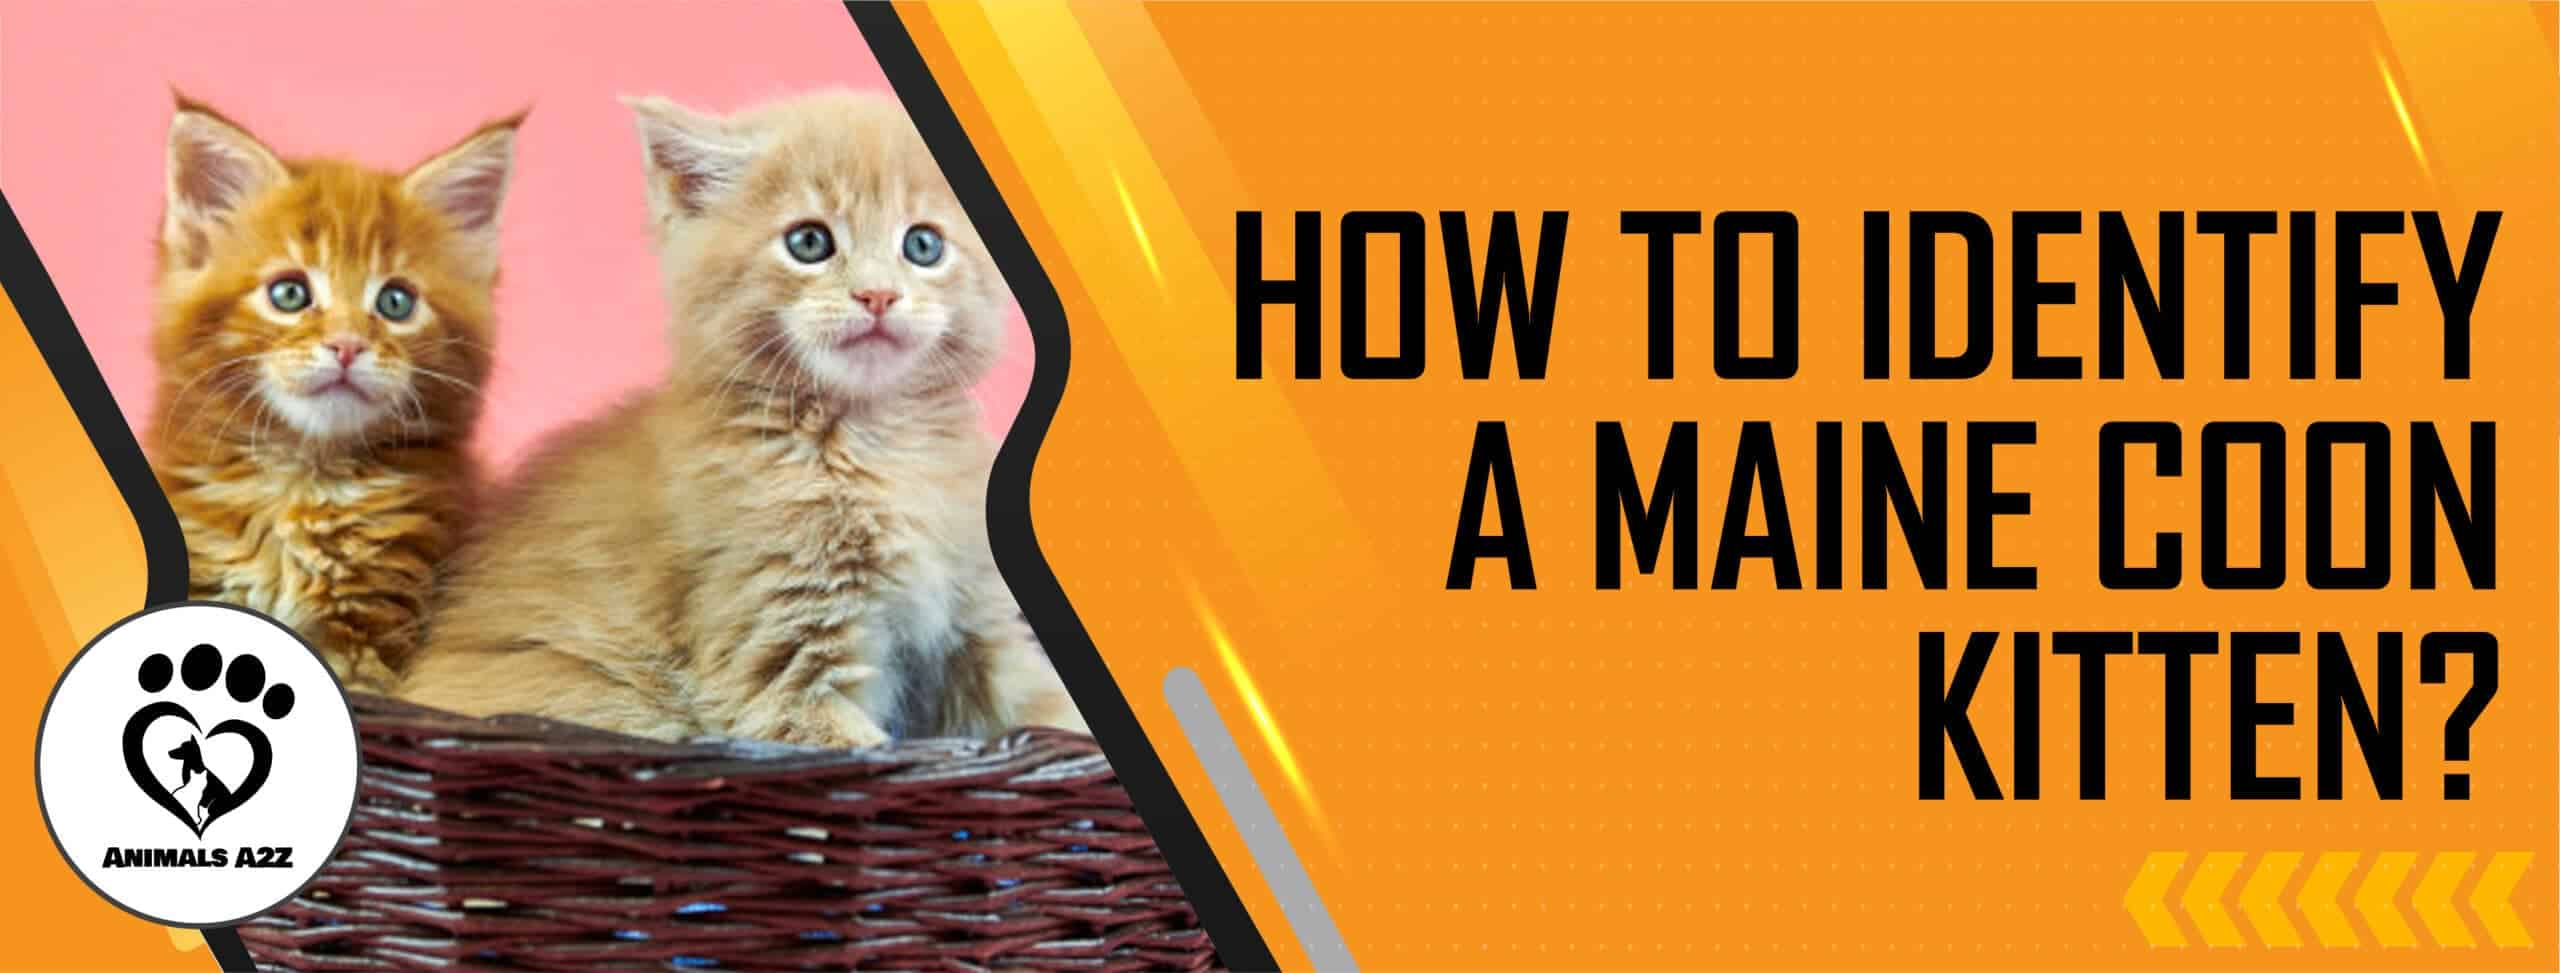 How to identify a Maine Coon kitten